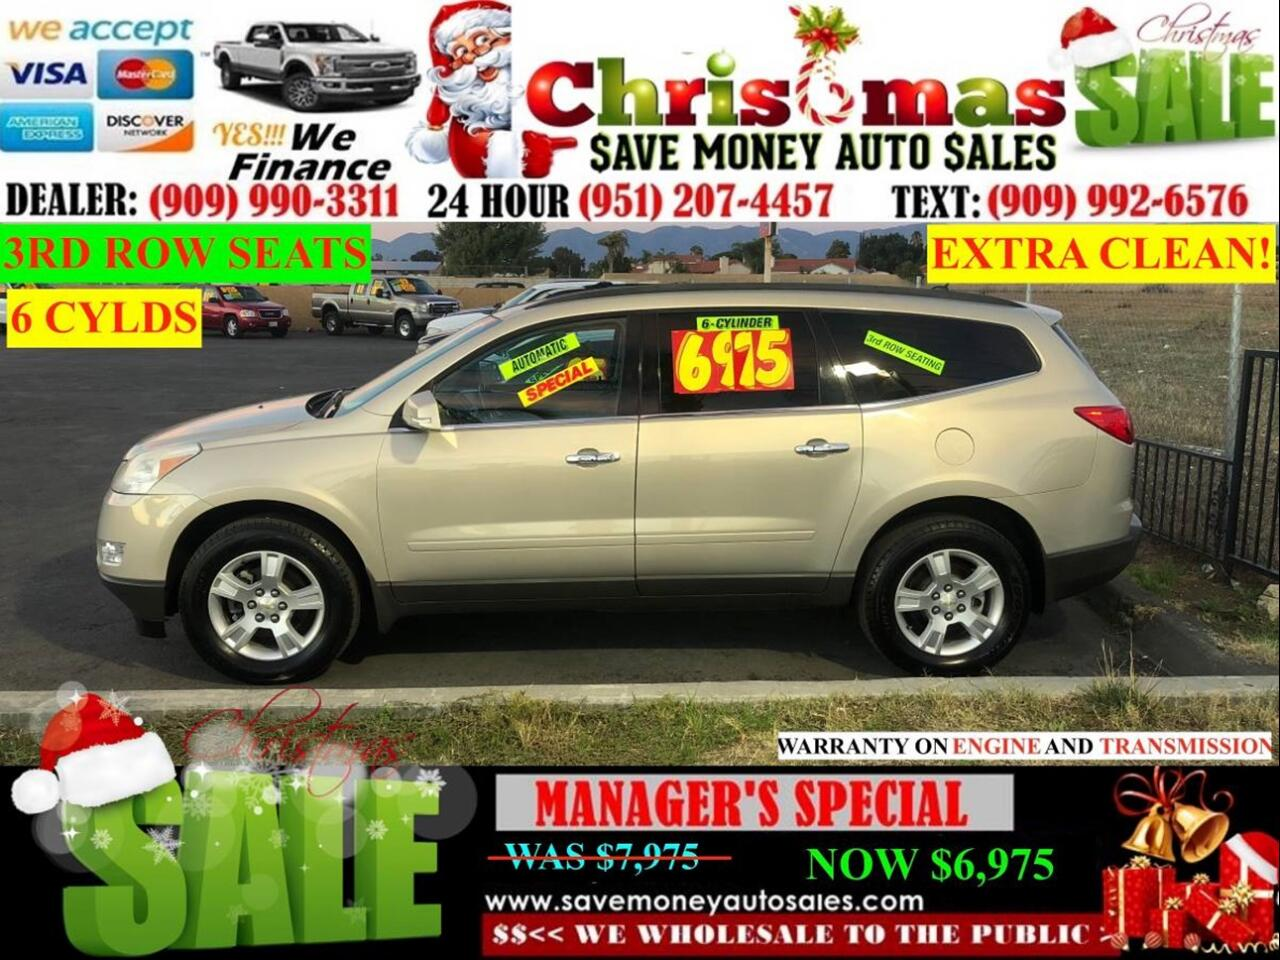 2011 Chevrolet Traverse LT FWD > 3RD ROW SEAT > MOON ROOF